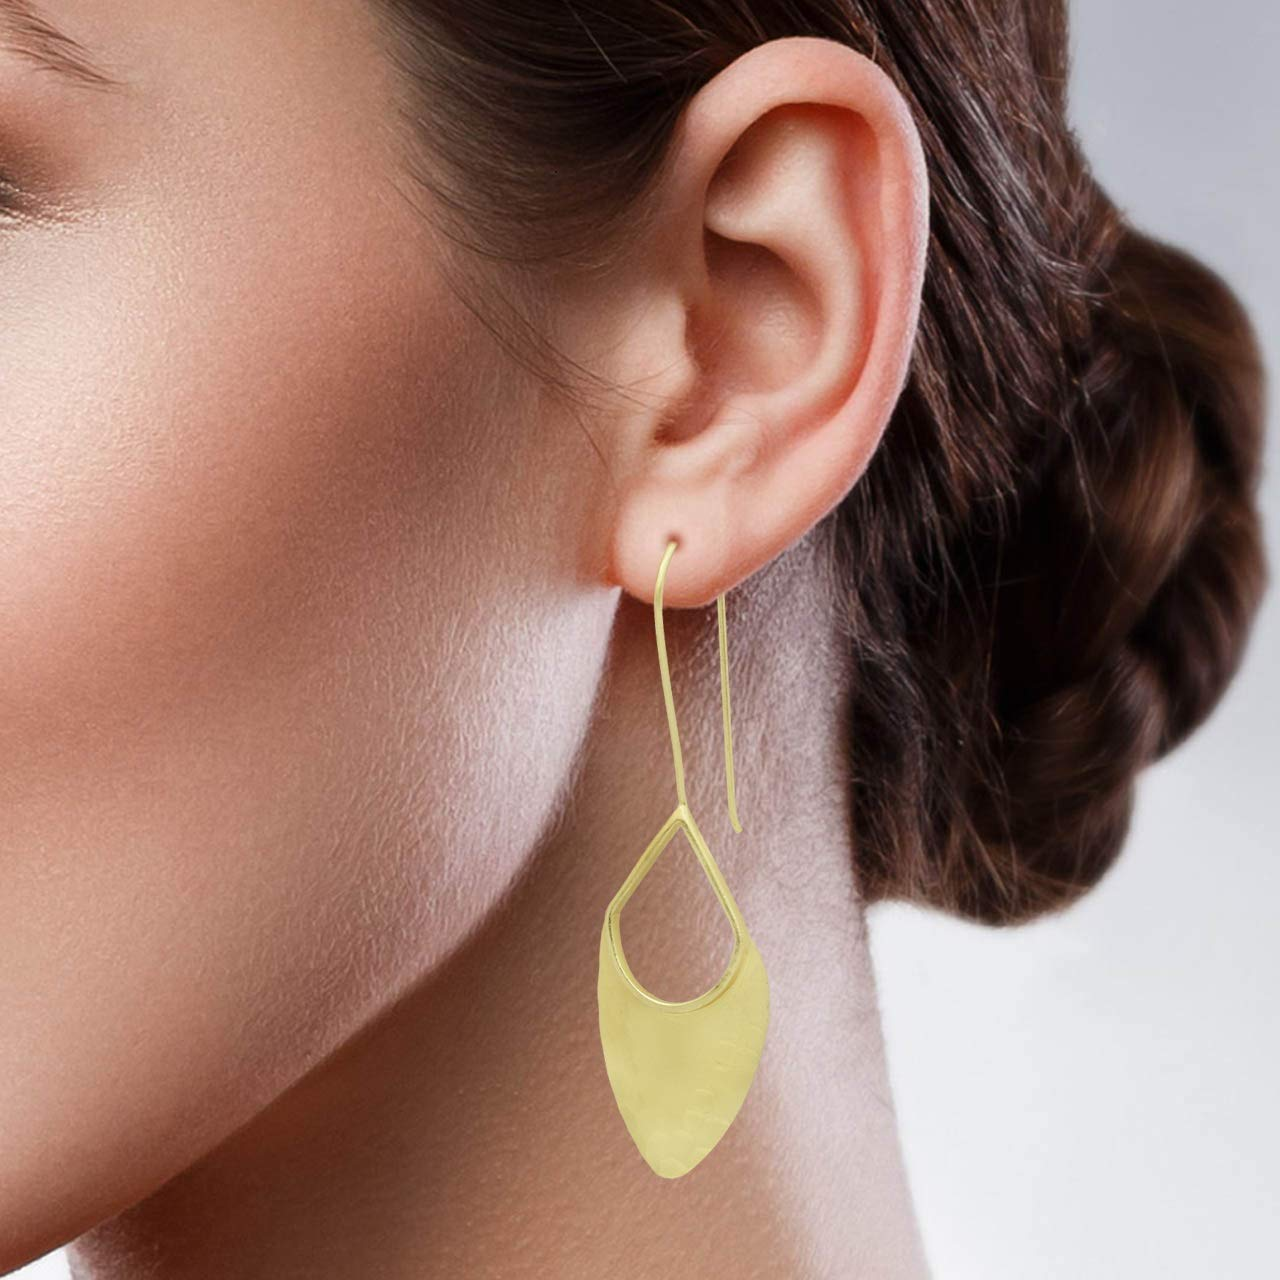 The V Collection Earrings Handmade Hammered Dangling Earrings for Women 22k Gold Plated Jewelry for Women and Girls